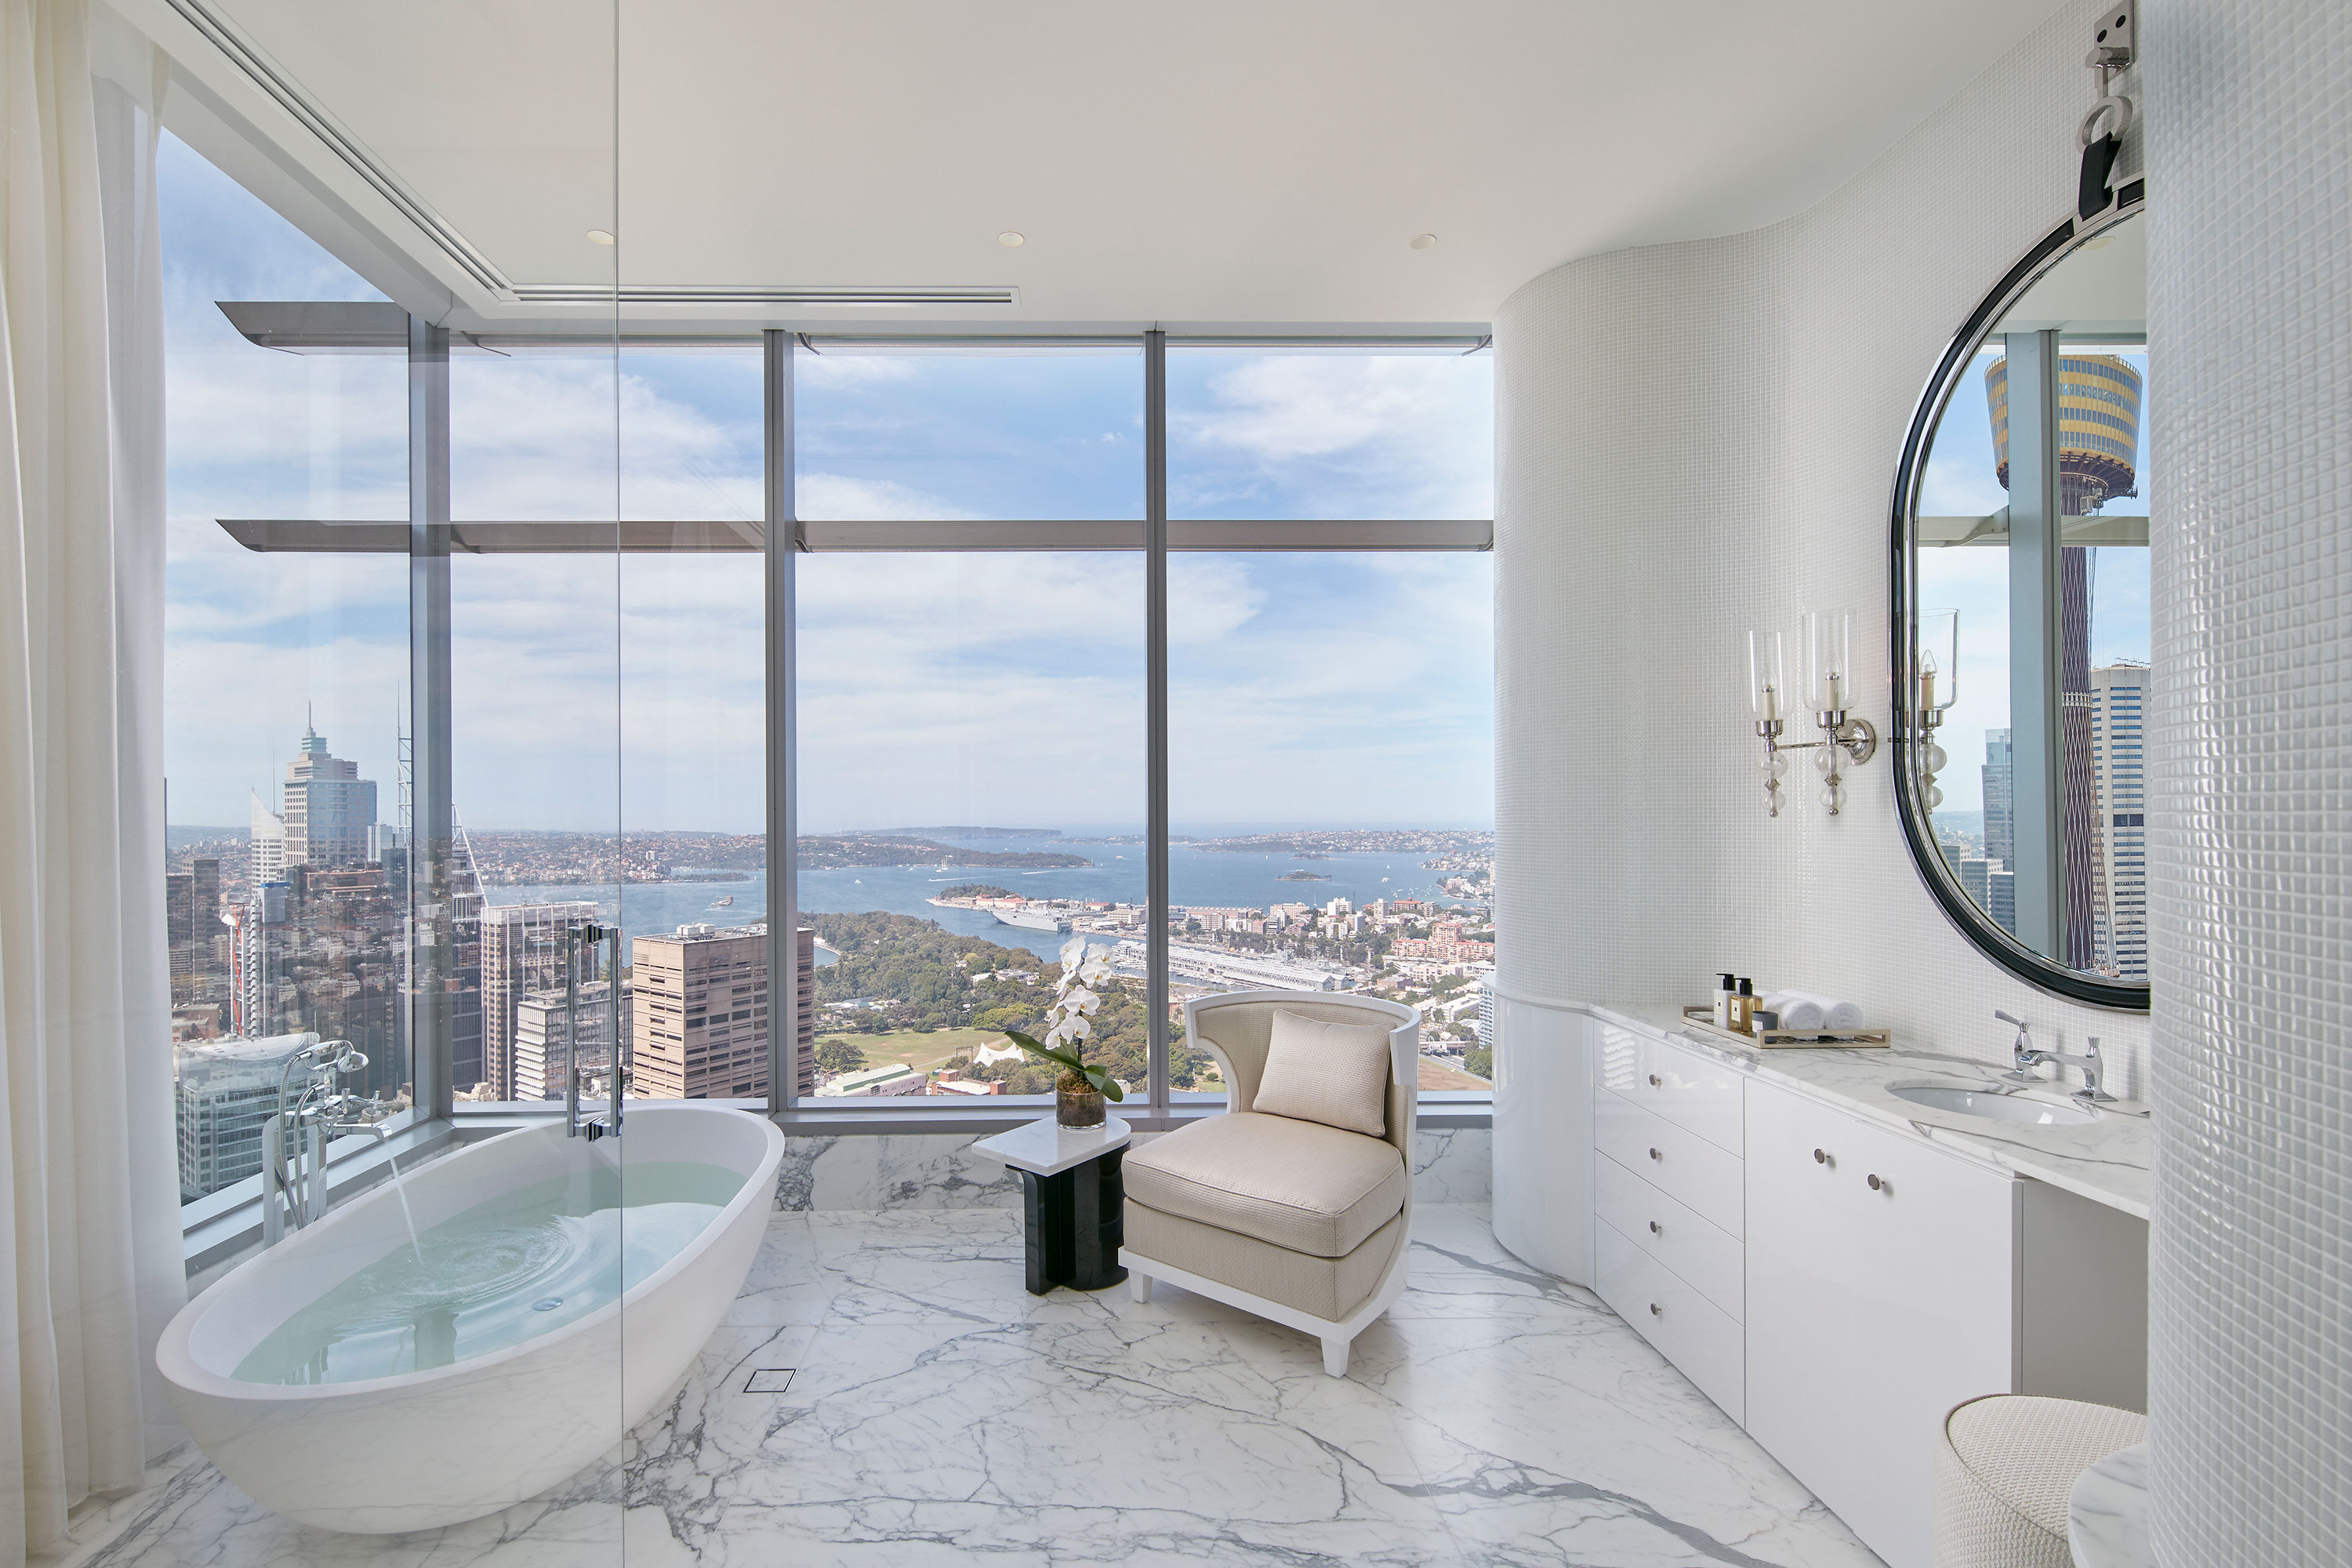 The only residence in the iconic ANZ Tower, this trophy penthouse in Sydney's CBD has showstopping views of the city, the harbour, and the world-famous opera house.